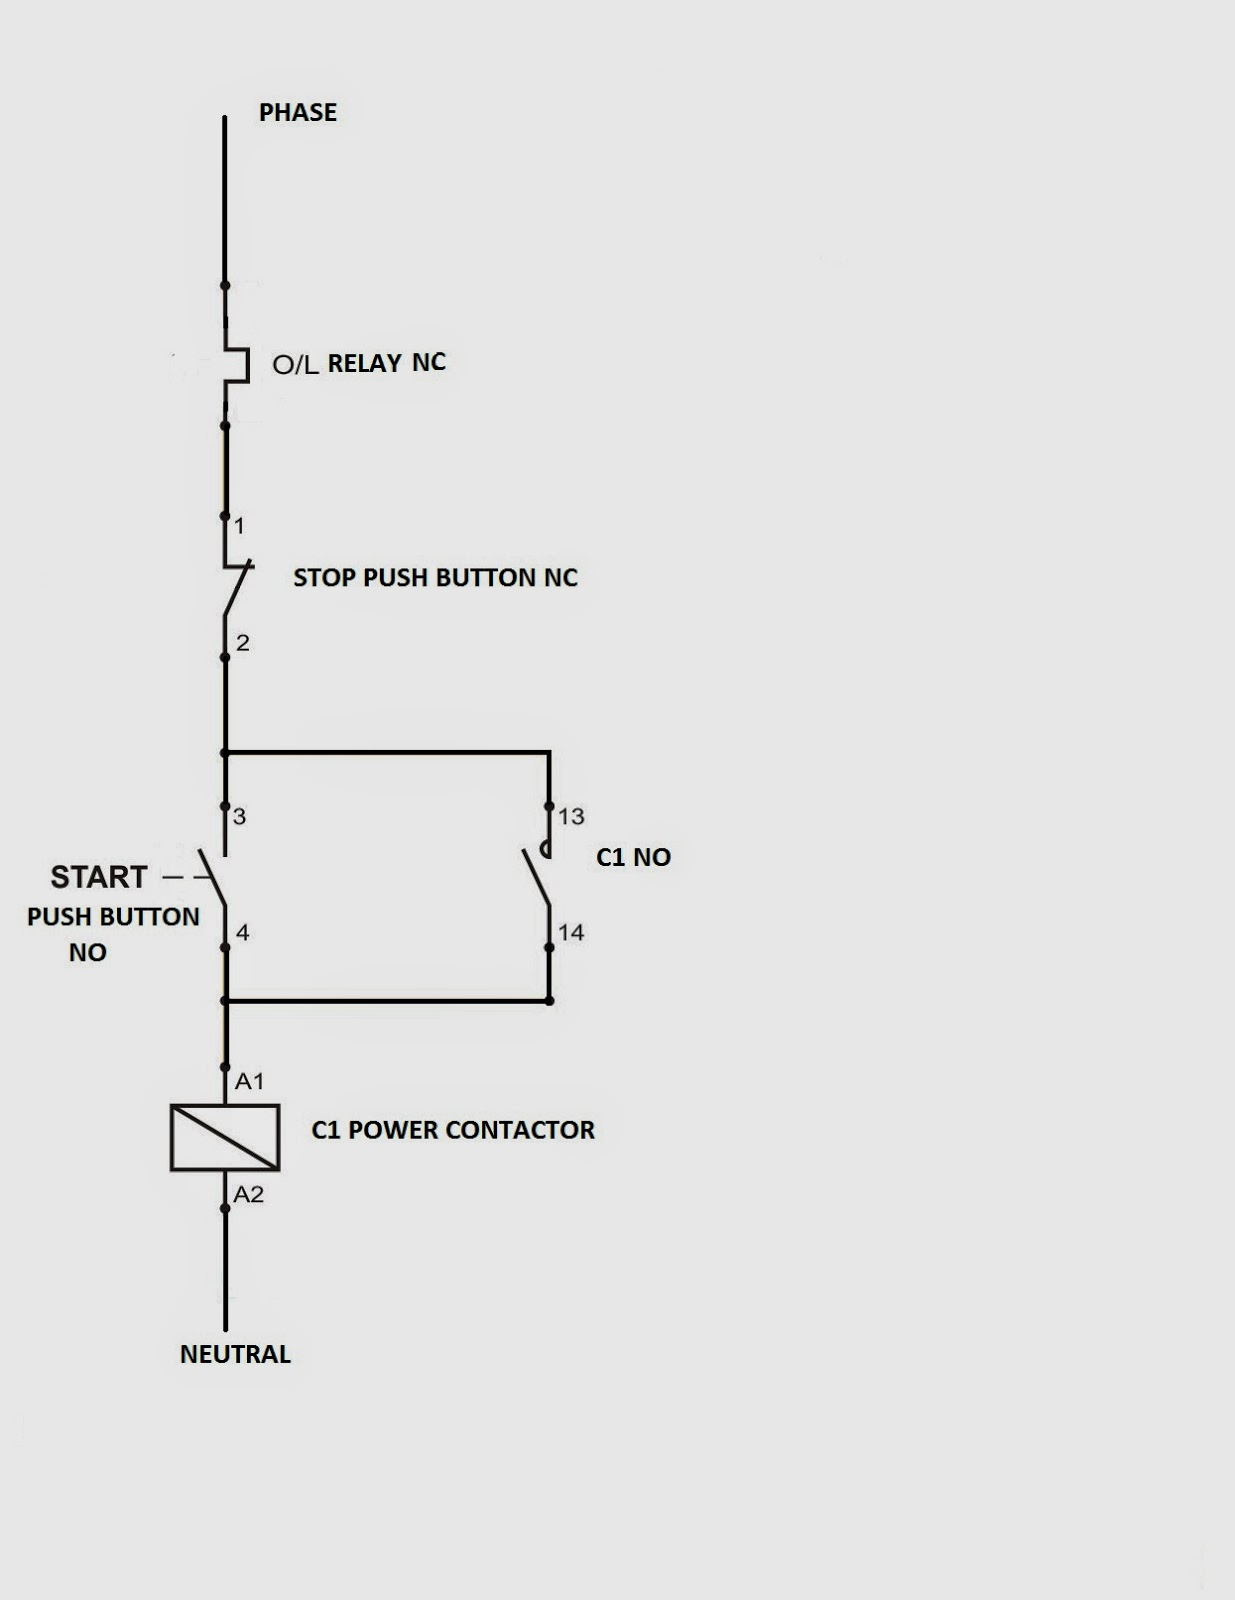 3 phase dol wiring diagram trailer plug 7 way uk electrical standards direct online starter